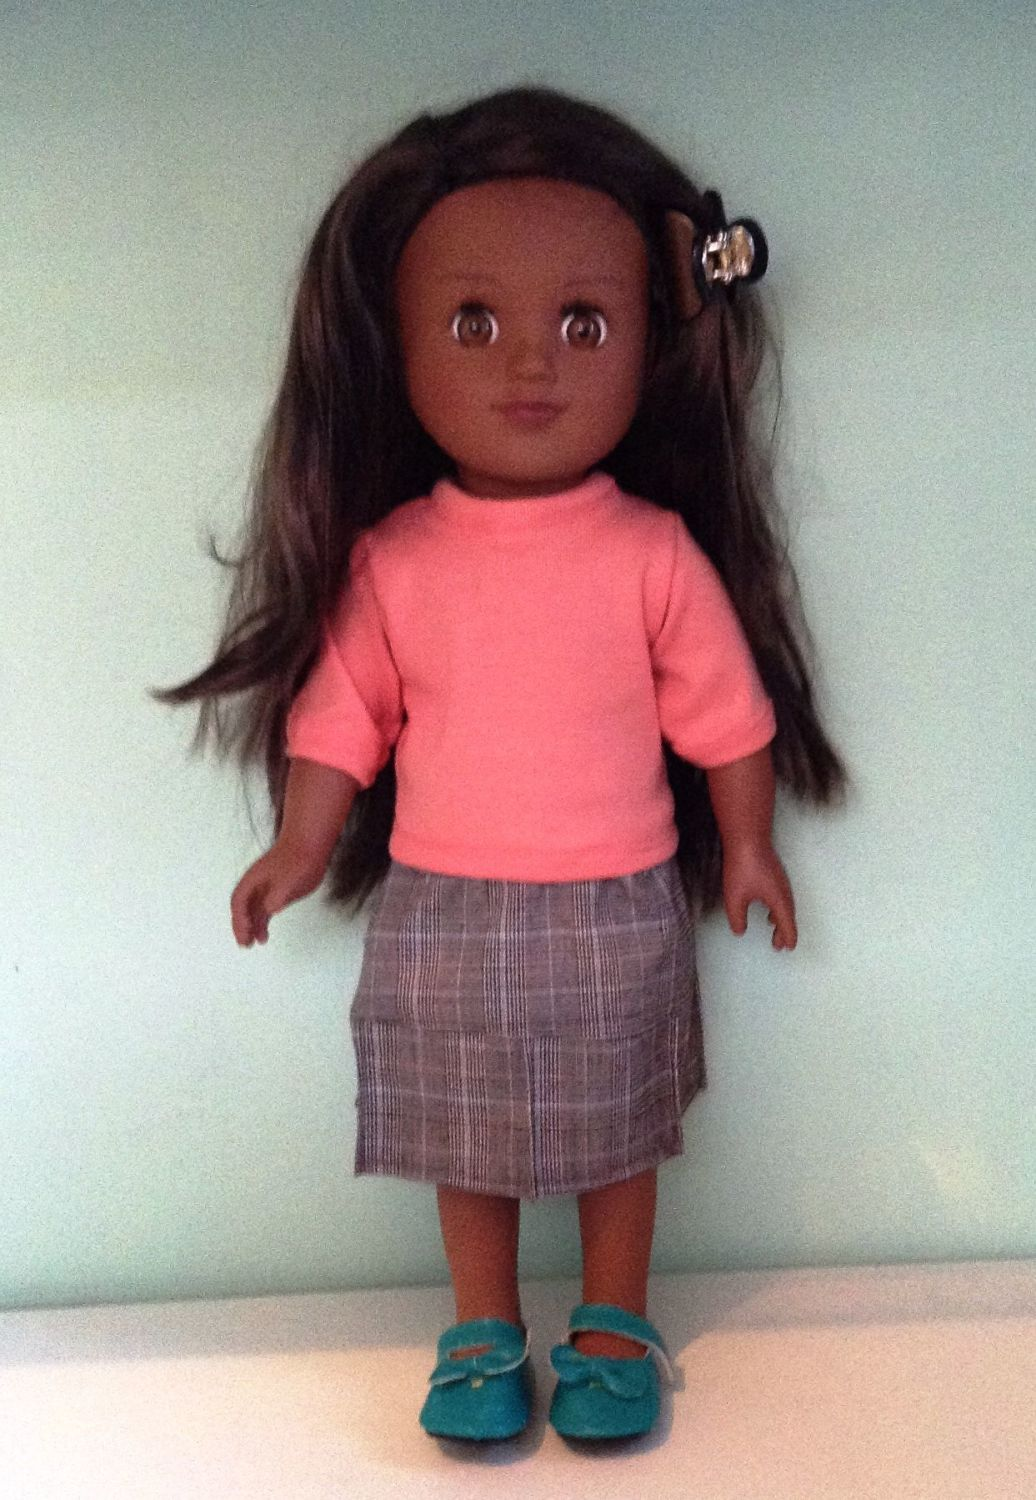 Doll's skirt and t shirt made to fit the 18 inch high Sindy doll and others